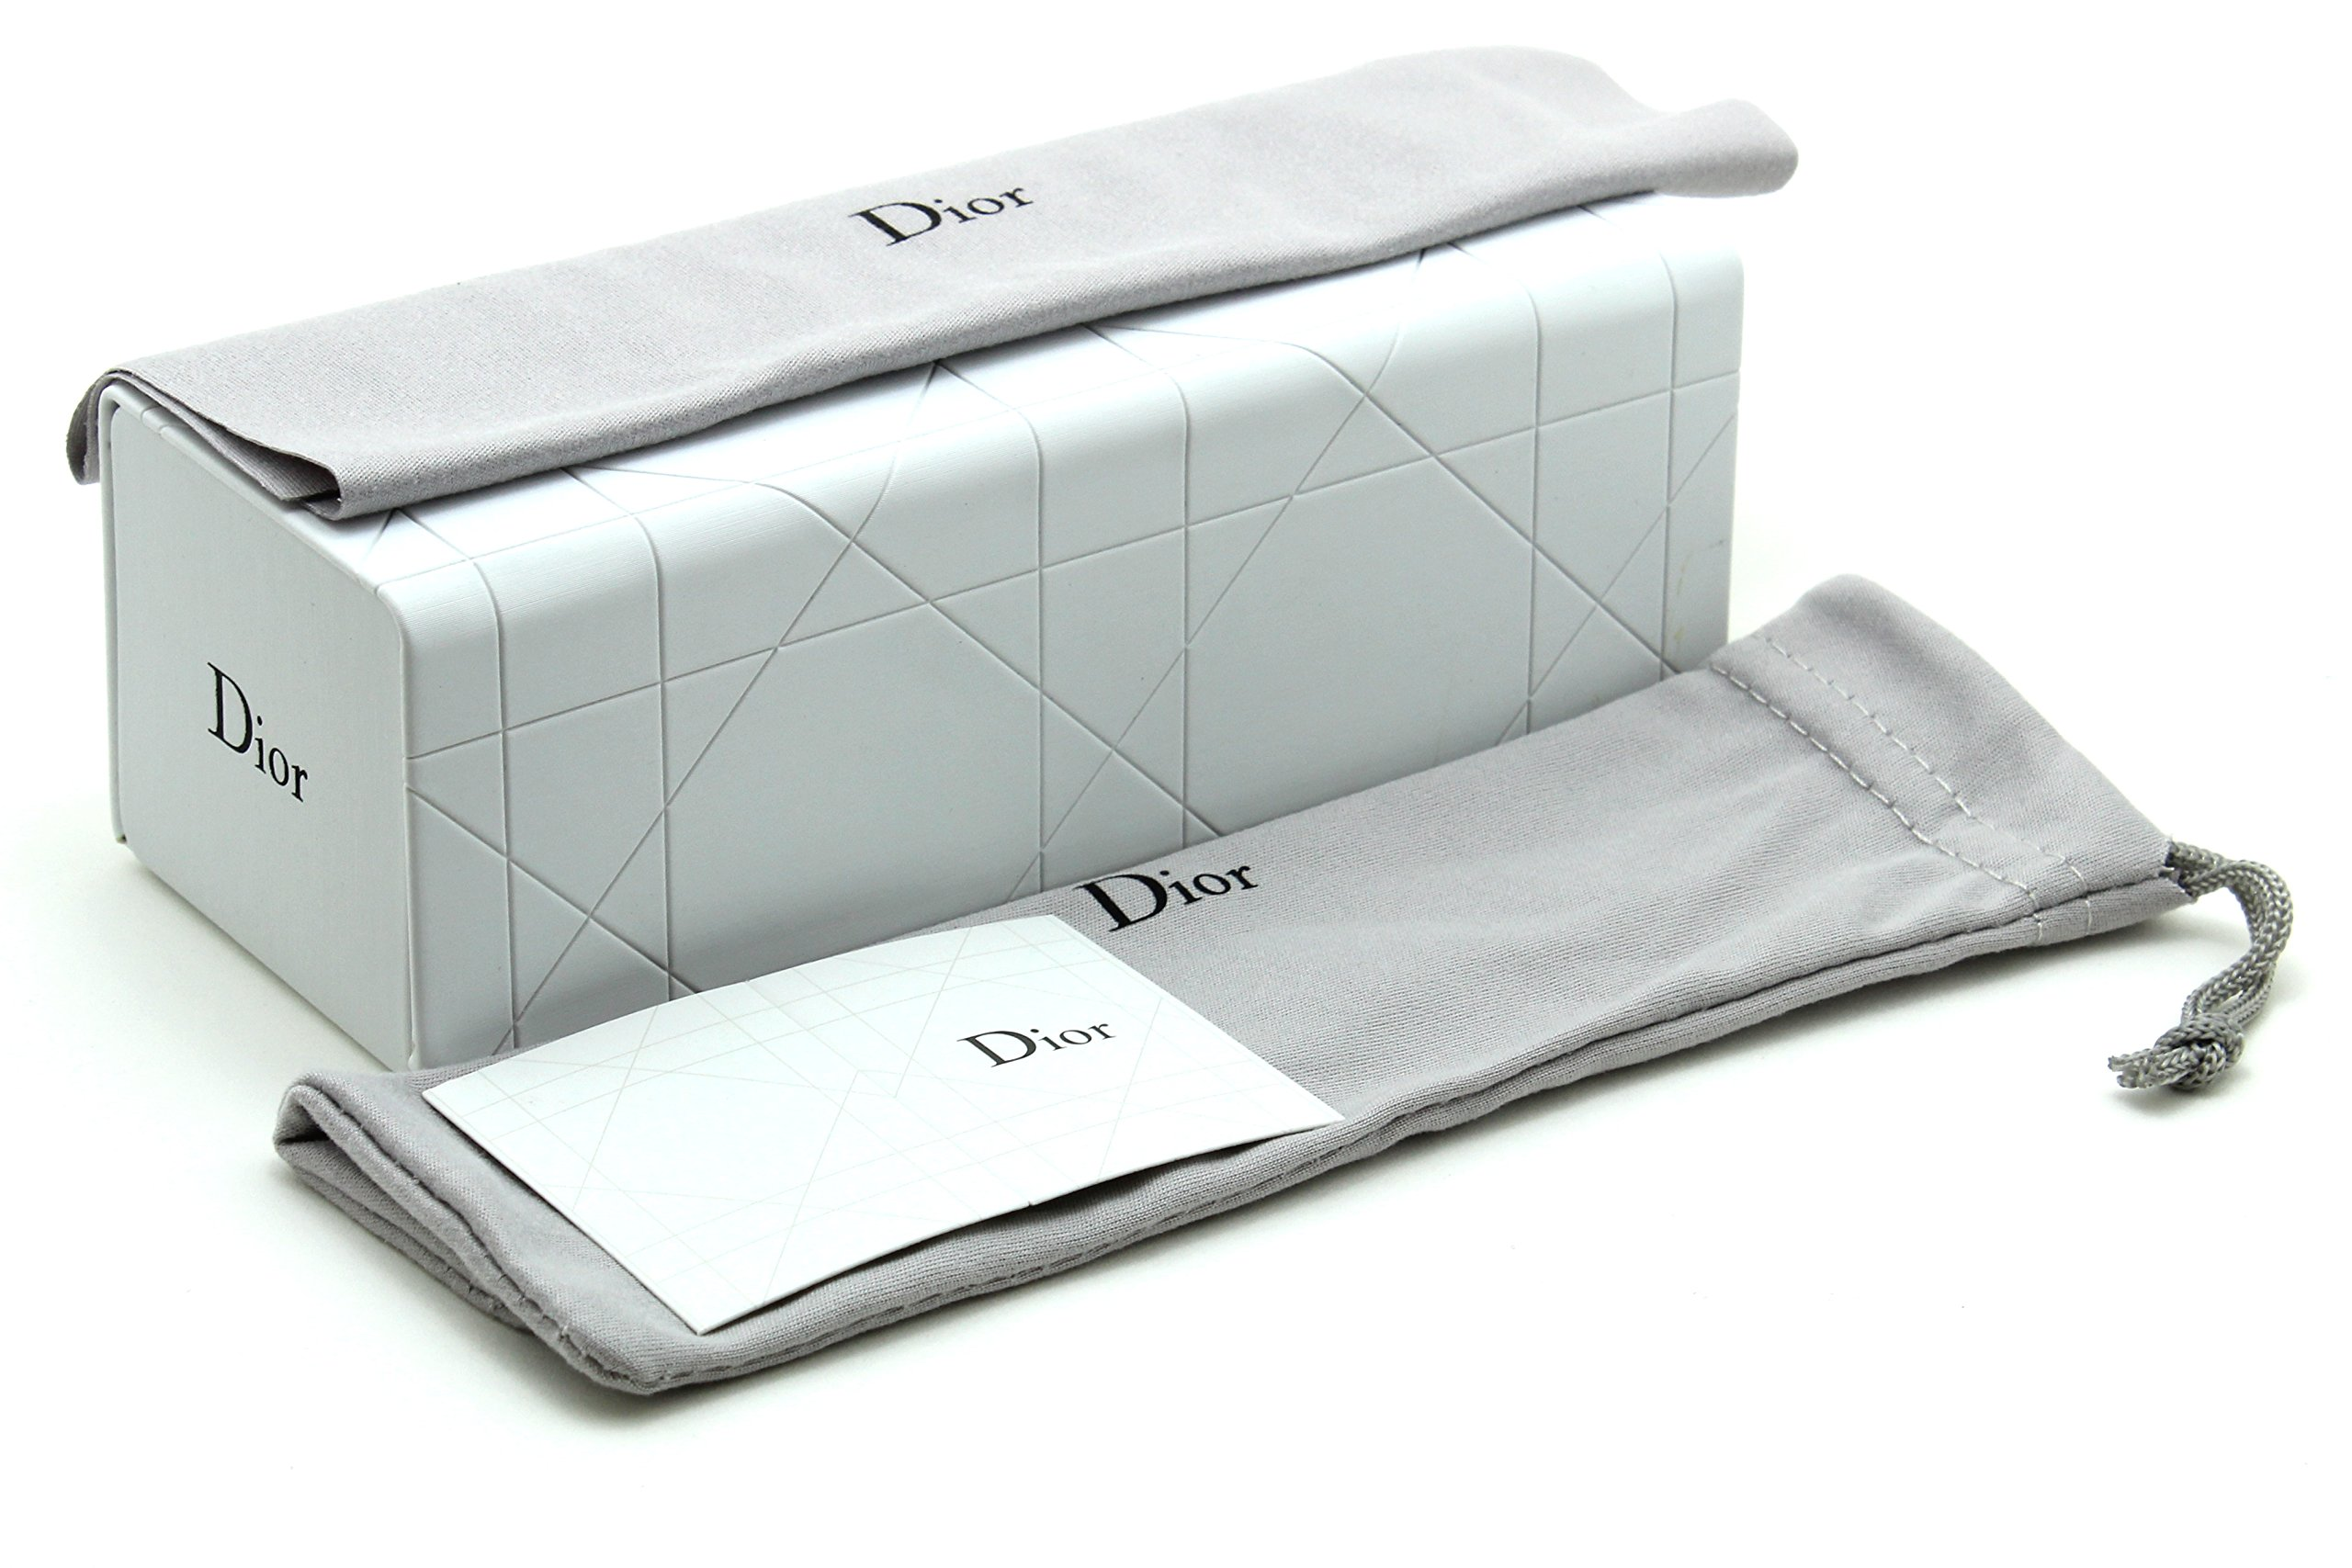 Dior Sunglass Eyeglass Magnetic Hard Case w/Dior Cleaning Cloth and Soft Pouch Medium by Dior